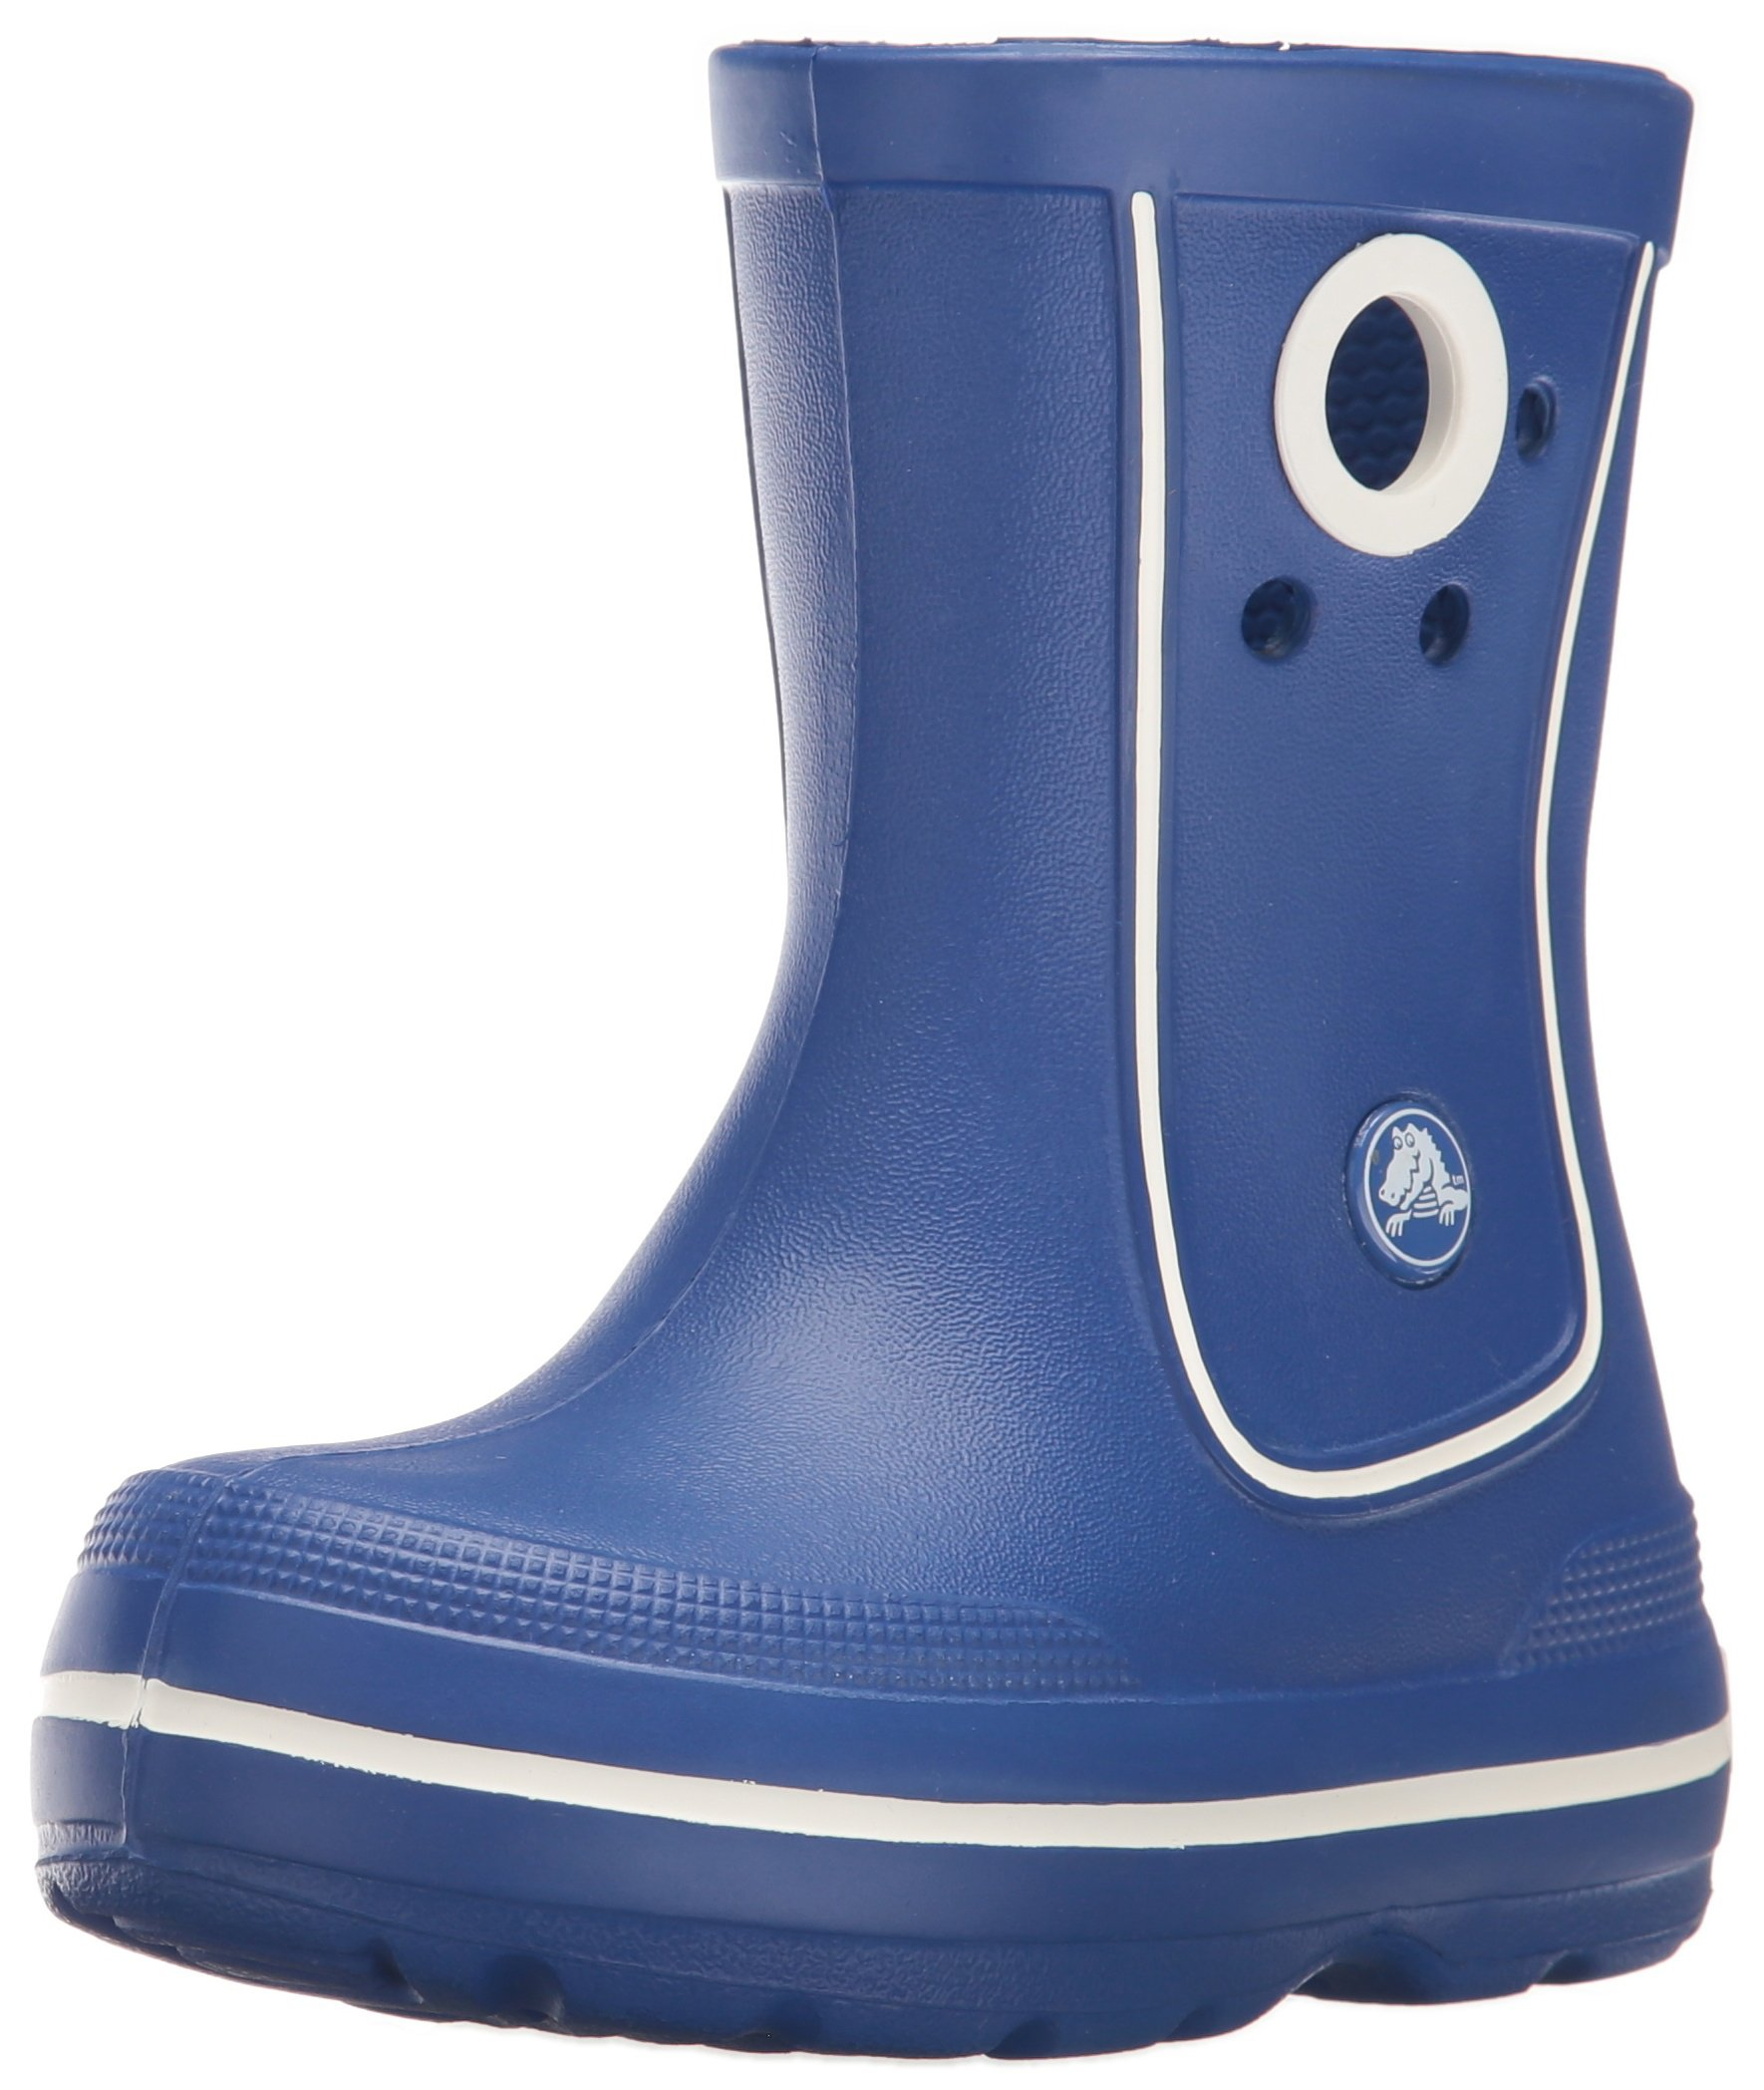 Crocs Kids Crocband Jaunt Rain Boot, Cerulean Blue, 10 M US Little Kid